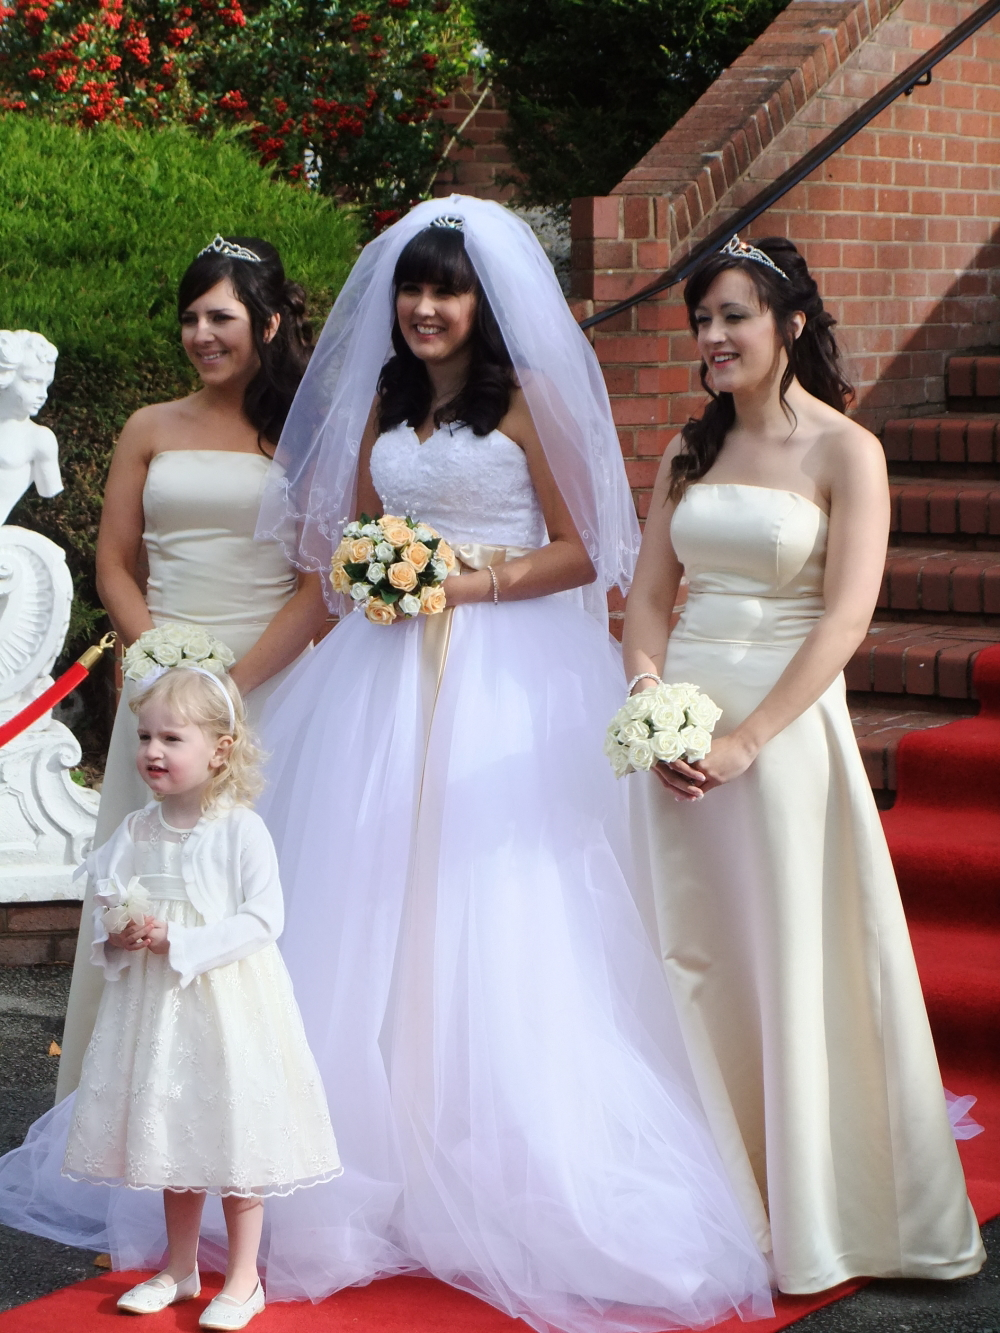 How to choose bridesmaids dress full guide weddings spirit how to choose bridesmaids dress full guide5 ombrellifo Images